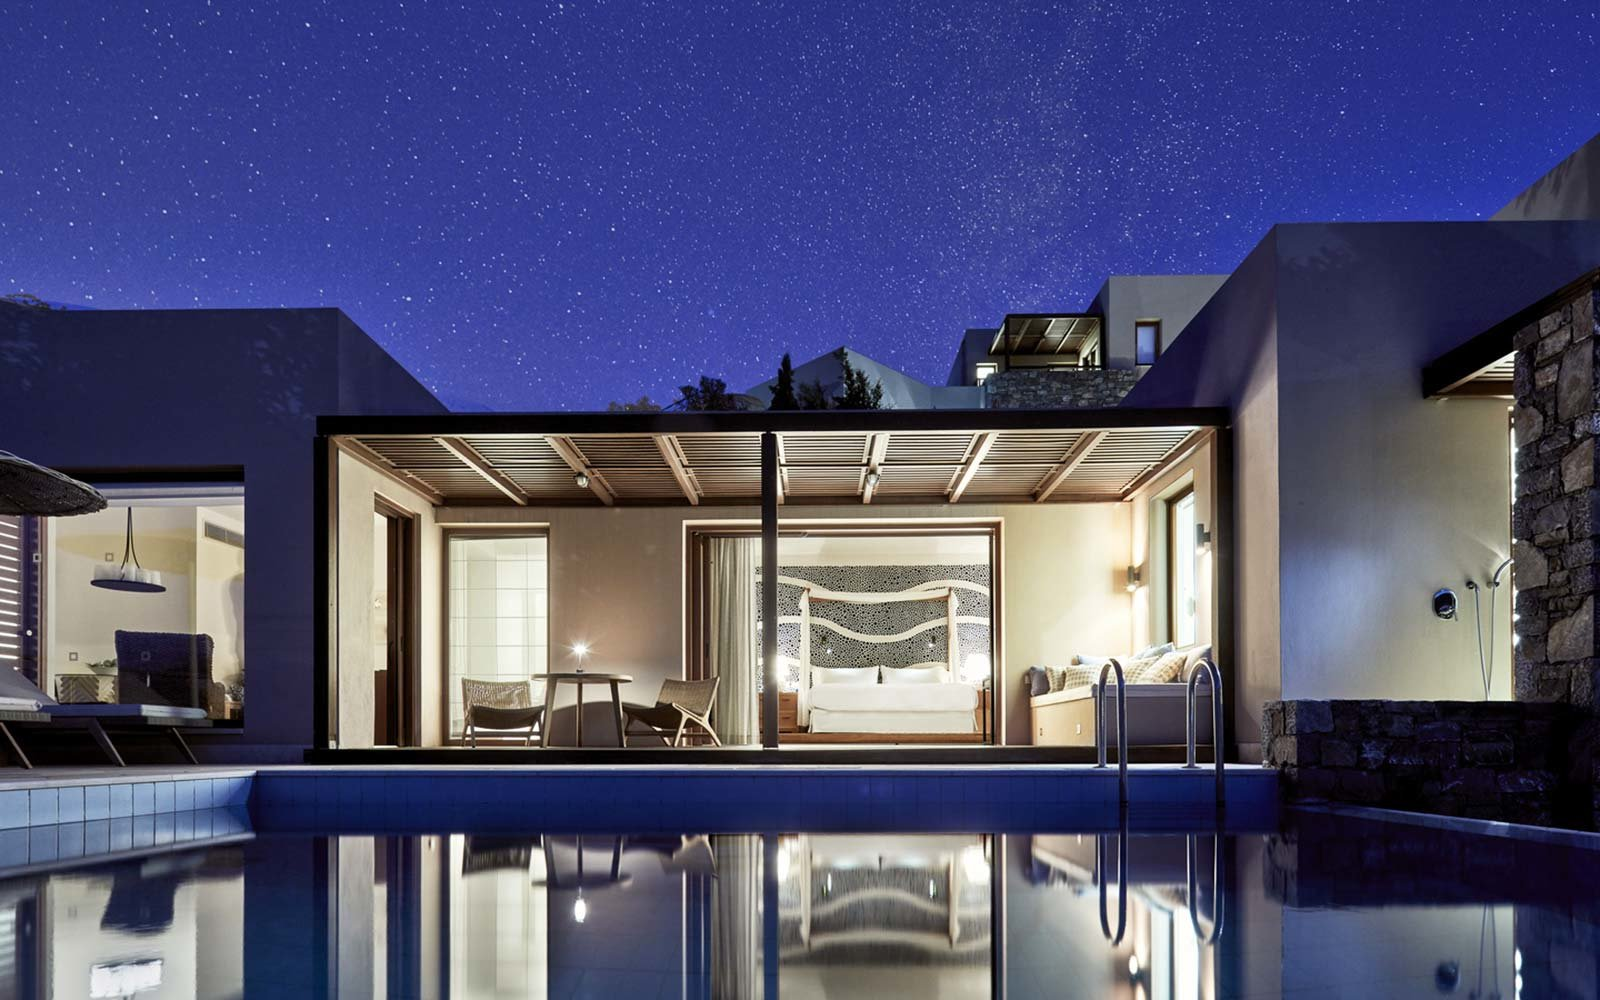 3. Blue Palace, a Luxury Collection Resort & Spa, Crete